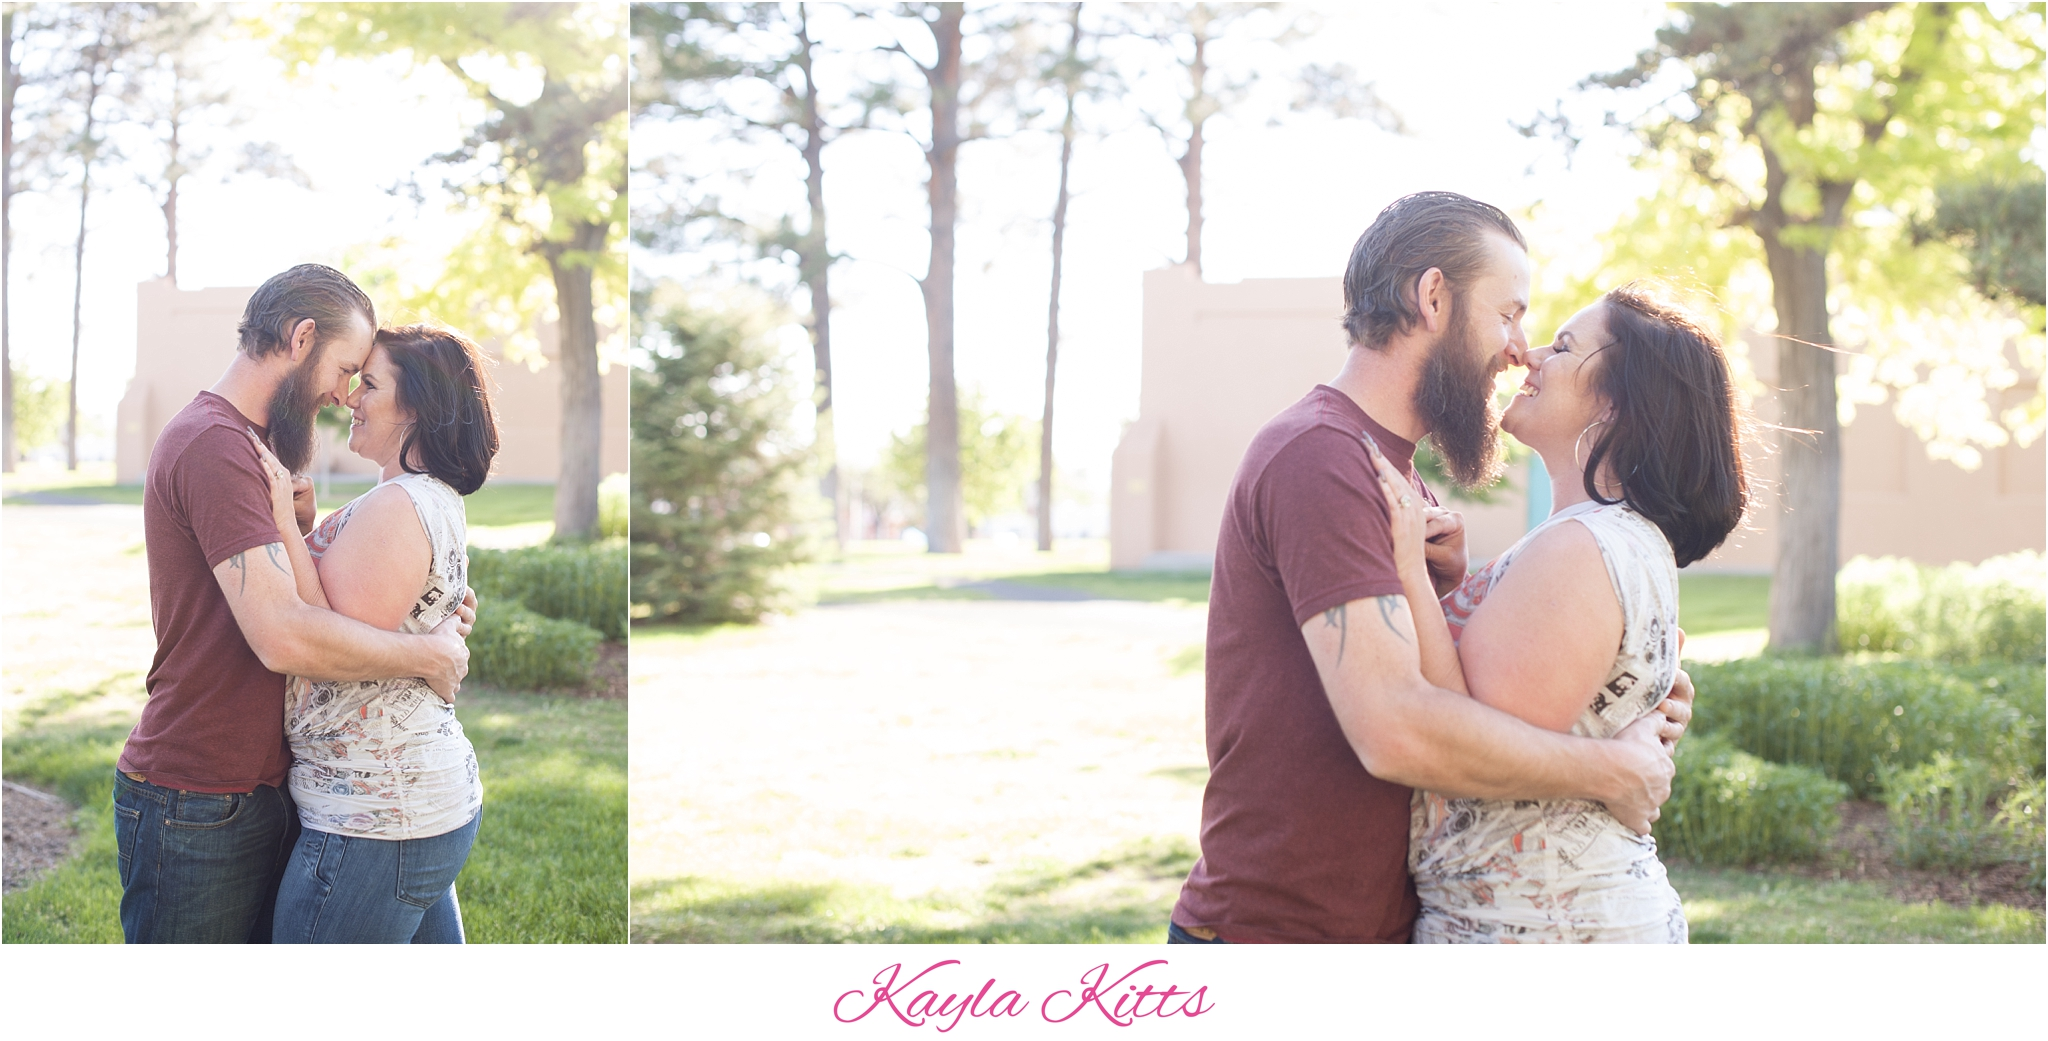 kayla kitts photography - albuquerque wedding photographer - albuquerque engagement photographer - nm wedding - albuquerque wedding - nm wedding - unm engagement - bosque engagement session_0007.jpg